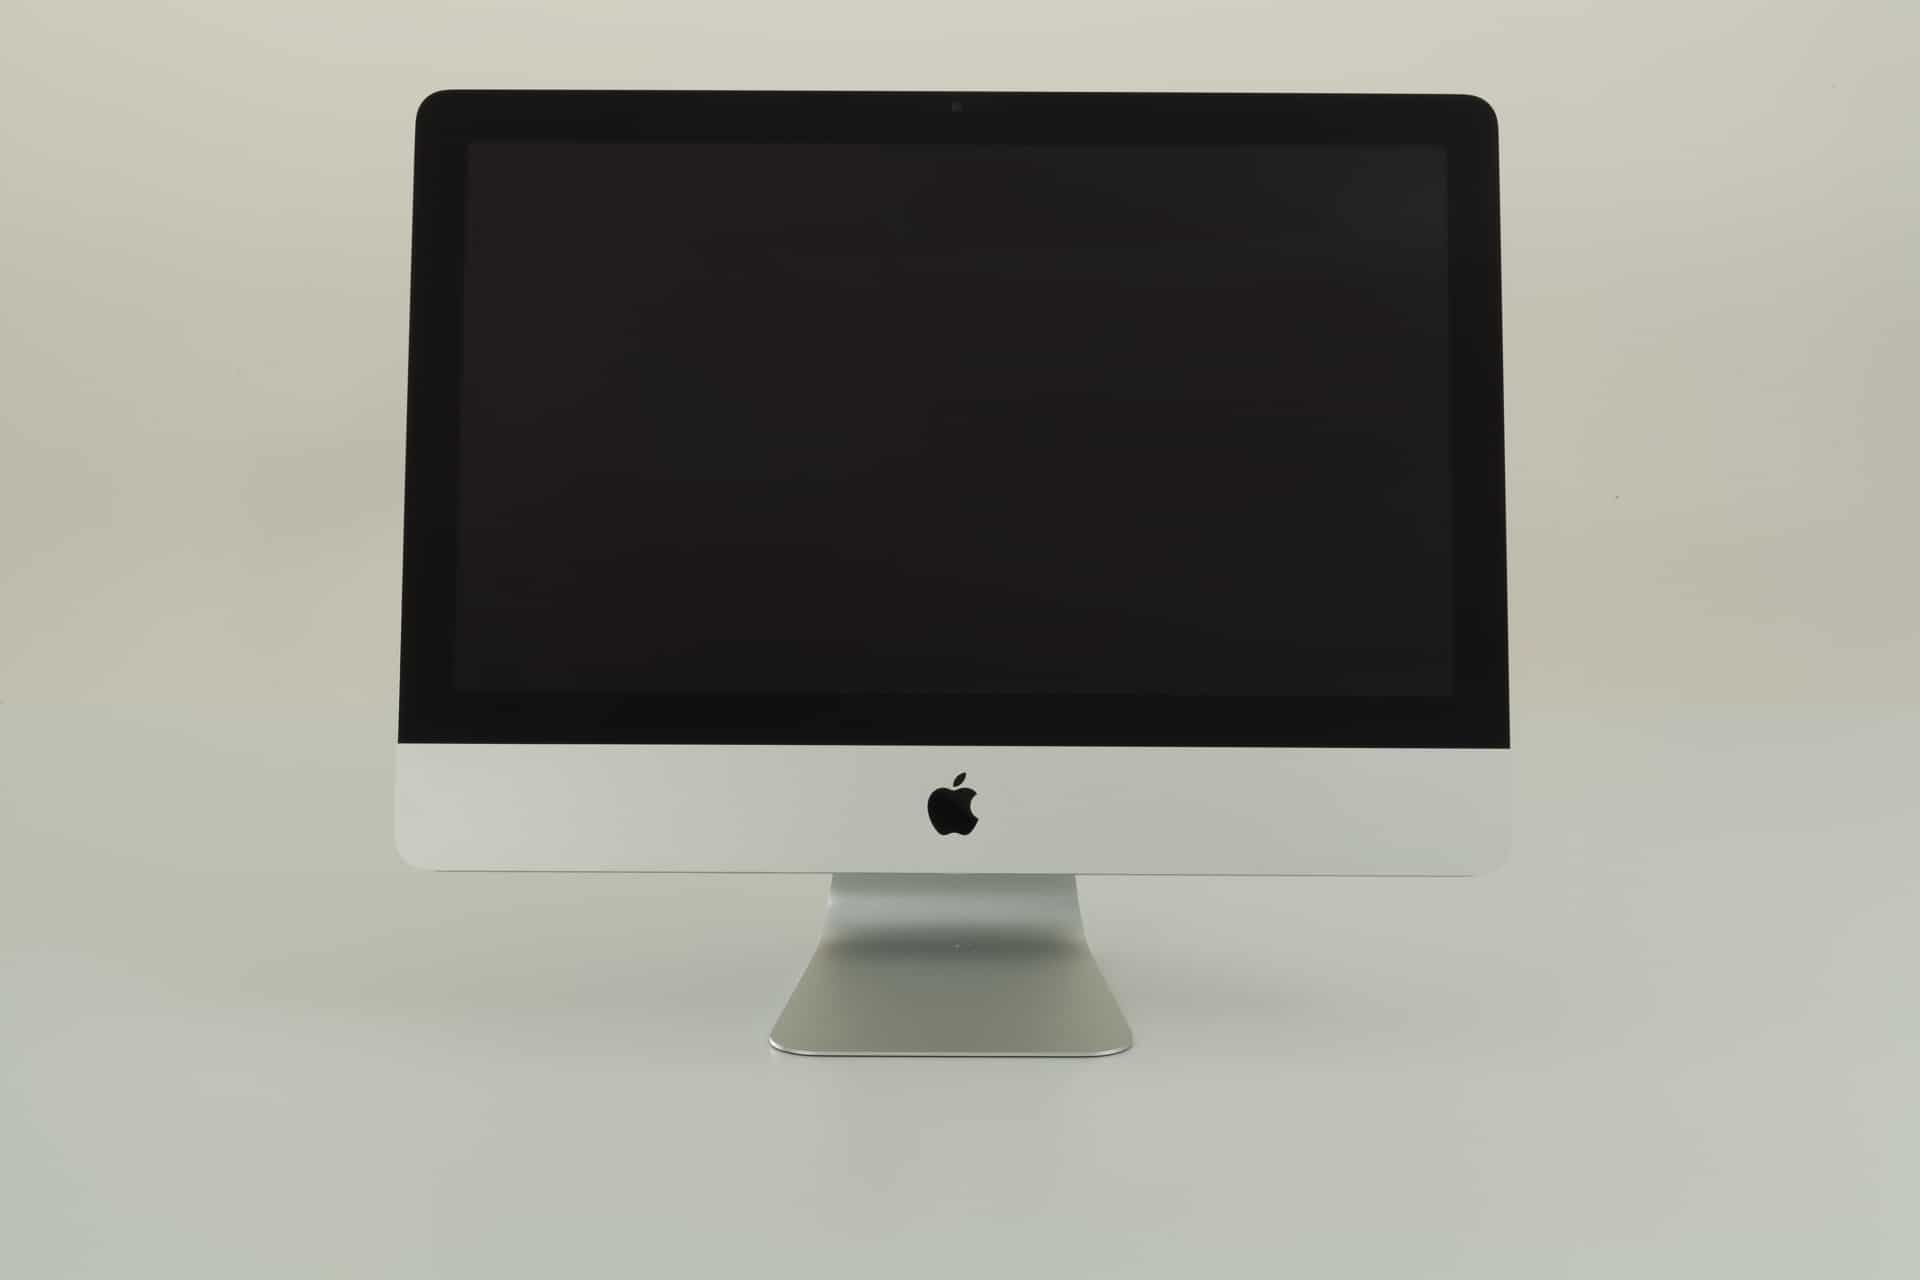 Apple iMac 27-inch Retina 5K 4.0Ghz Core i7 – Late 2015